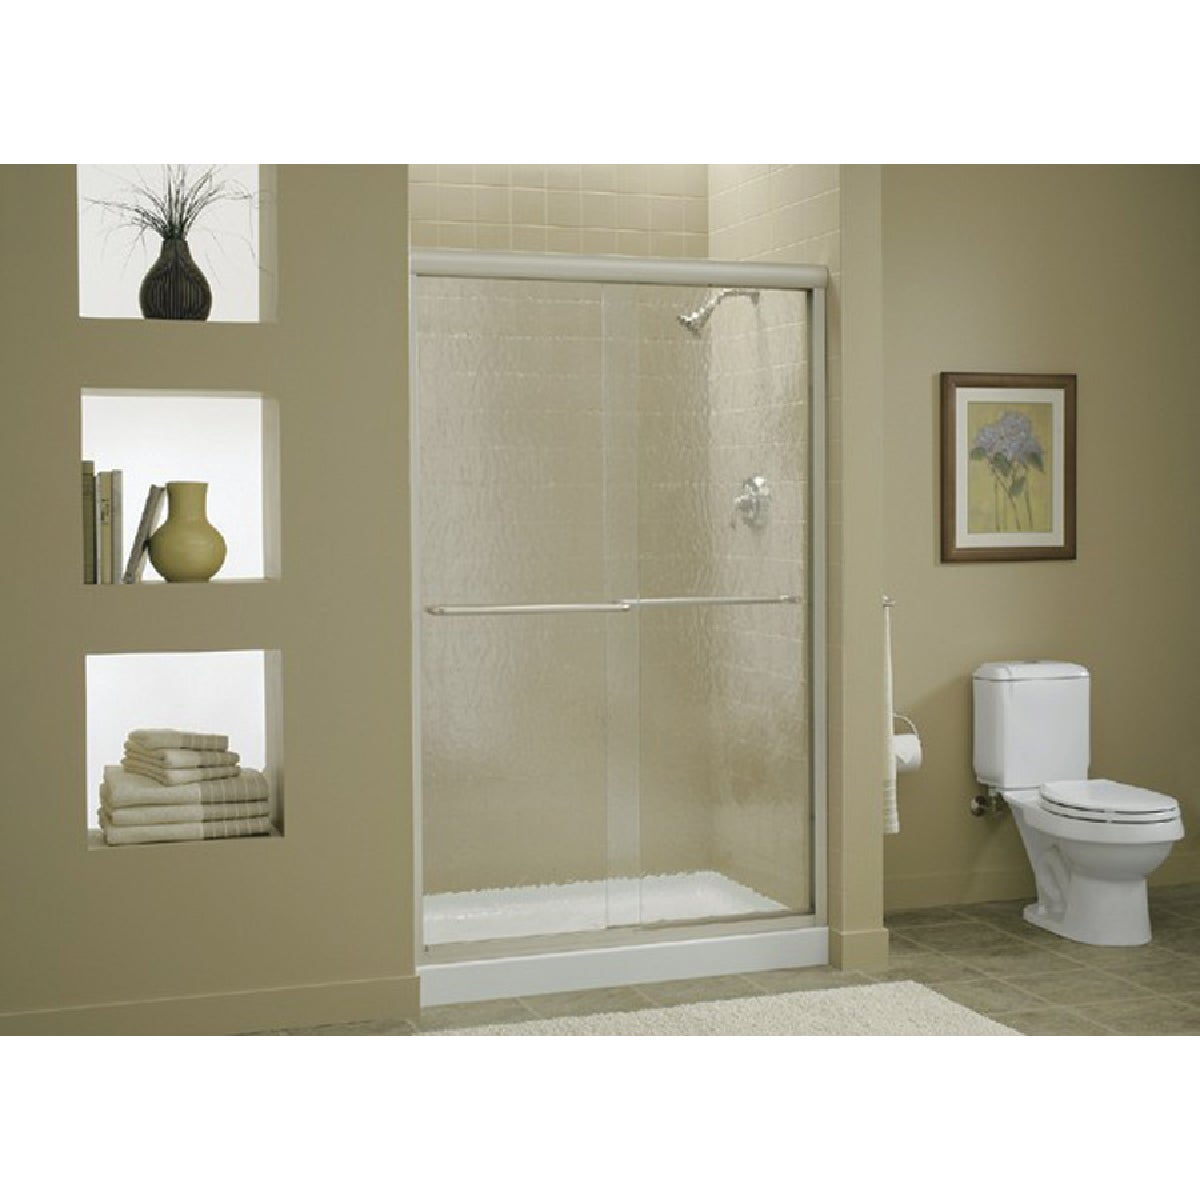 Sterling SILVER BY-PASS TUB DOOR 5475-48S-G05